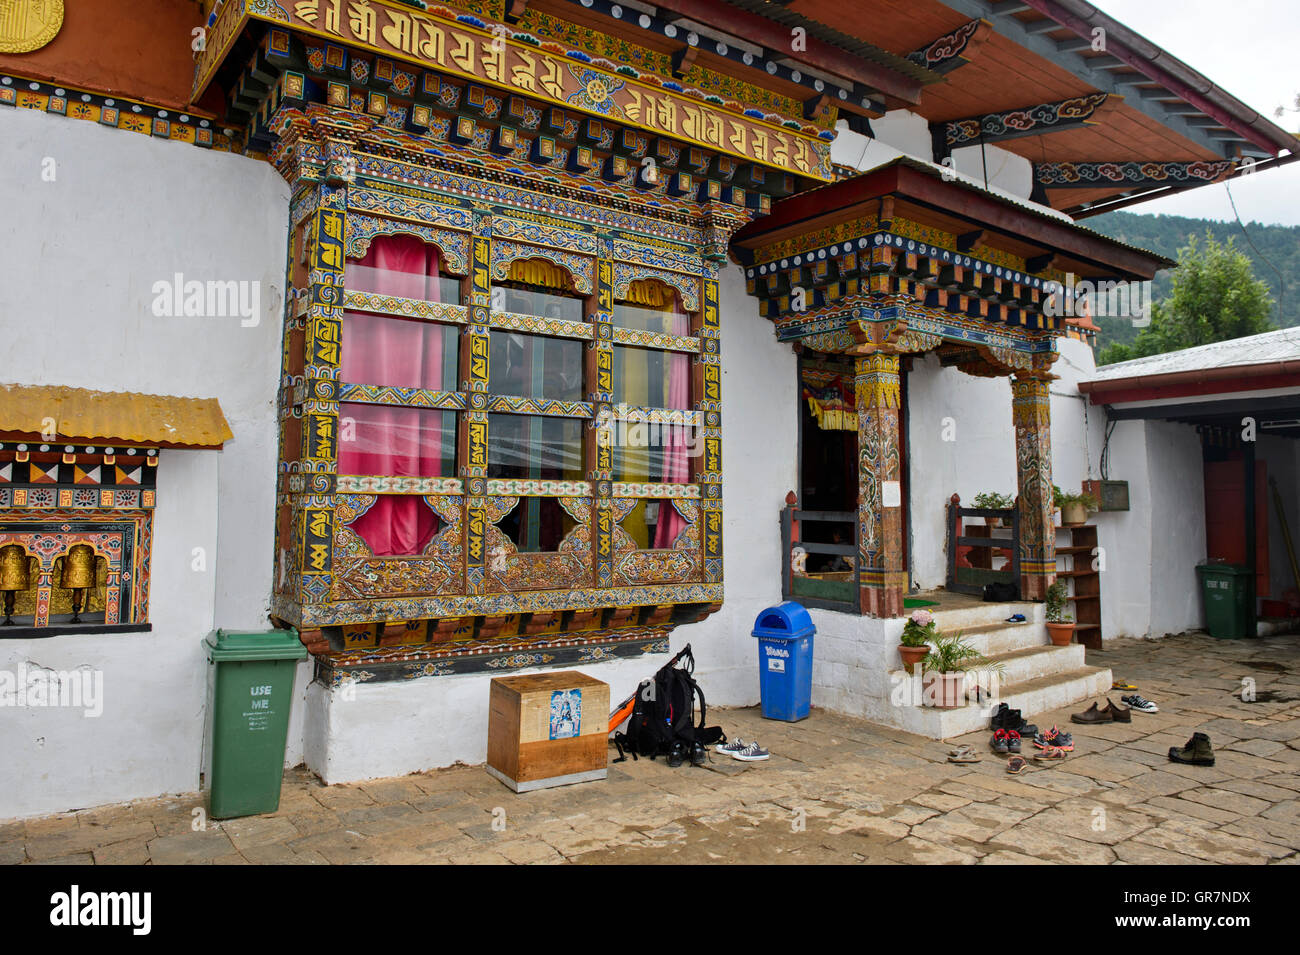 Ornate Window And Entrance To The Inner Temple, Monastery Chime Lhakhang Near Lobesa, Bhutan - Stock Image